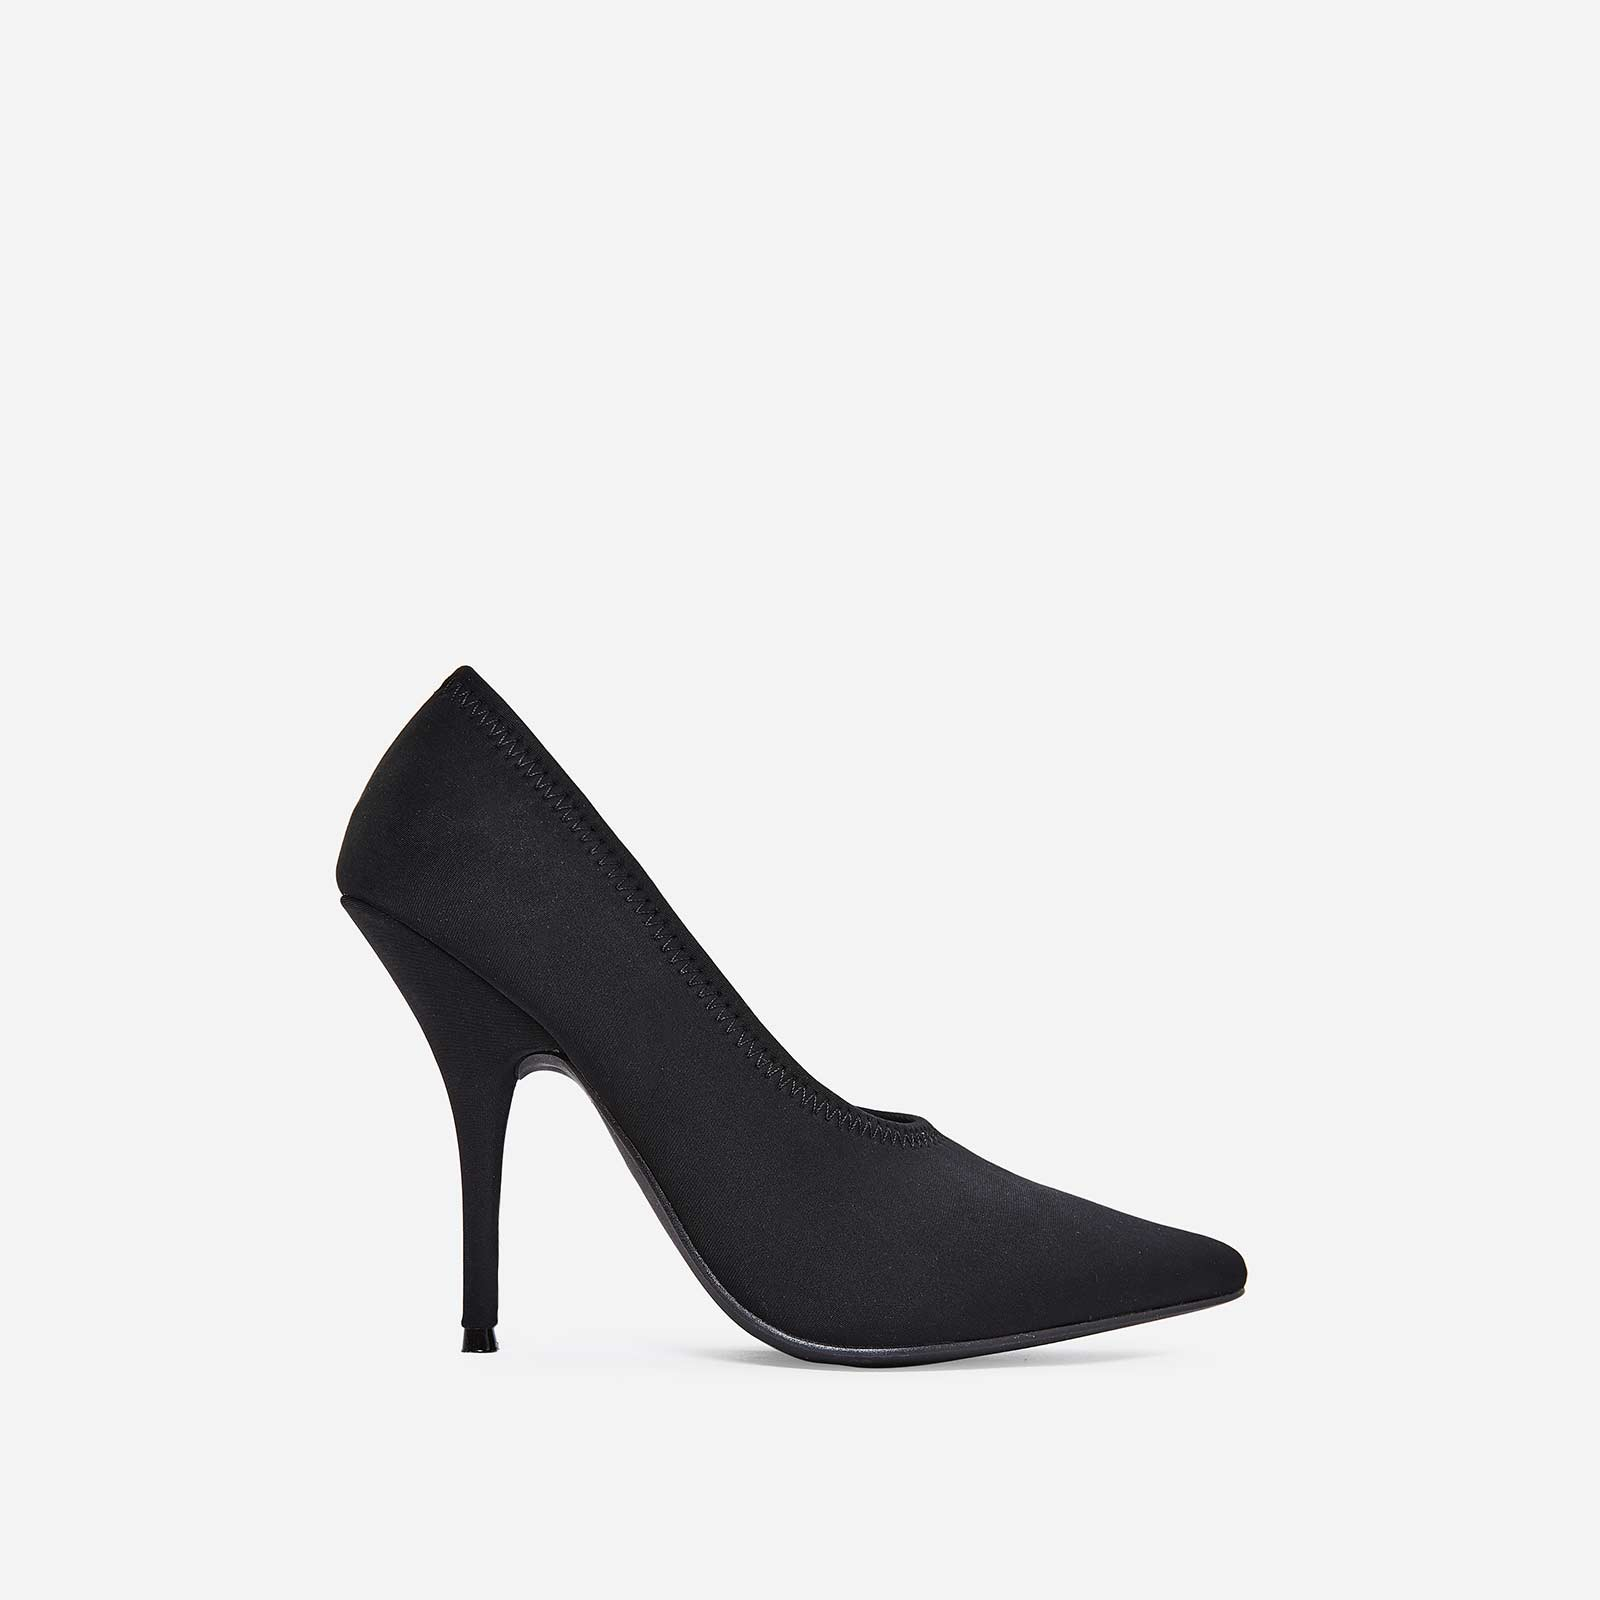 Fabulous Court Heel in Black Lycra